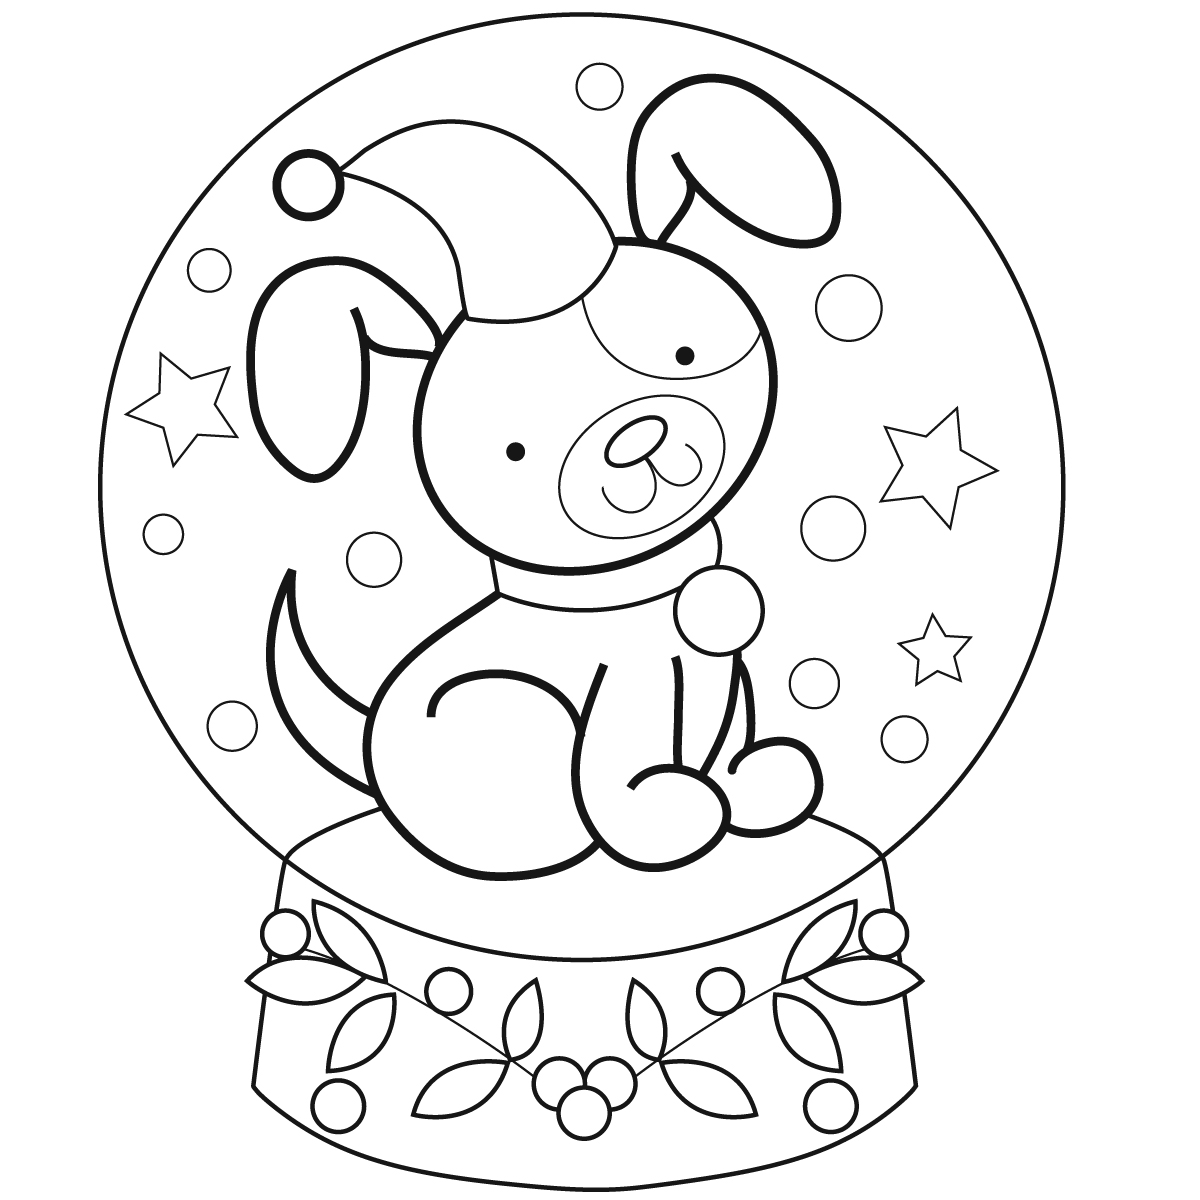 snow dog coloring pages - photo#27